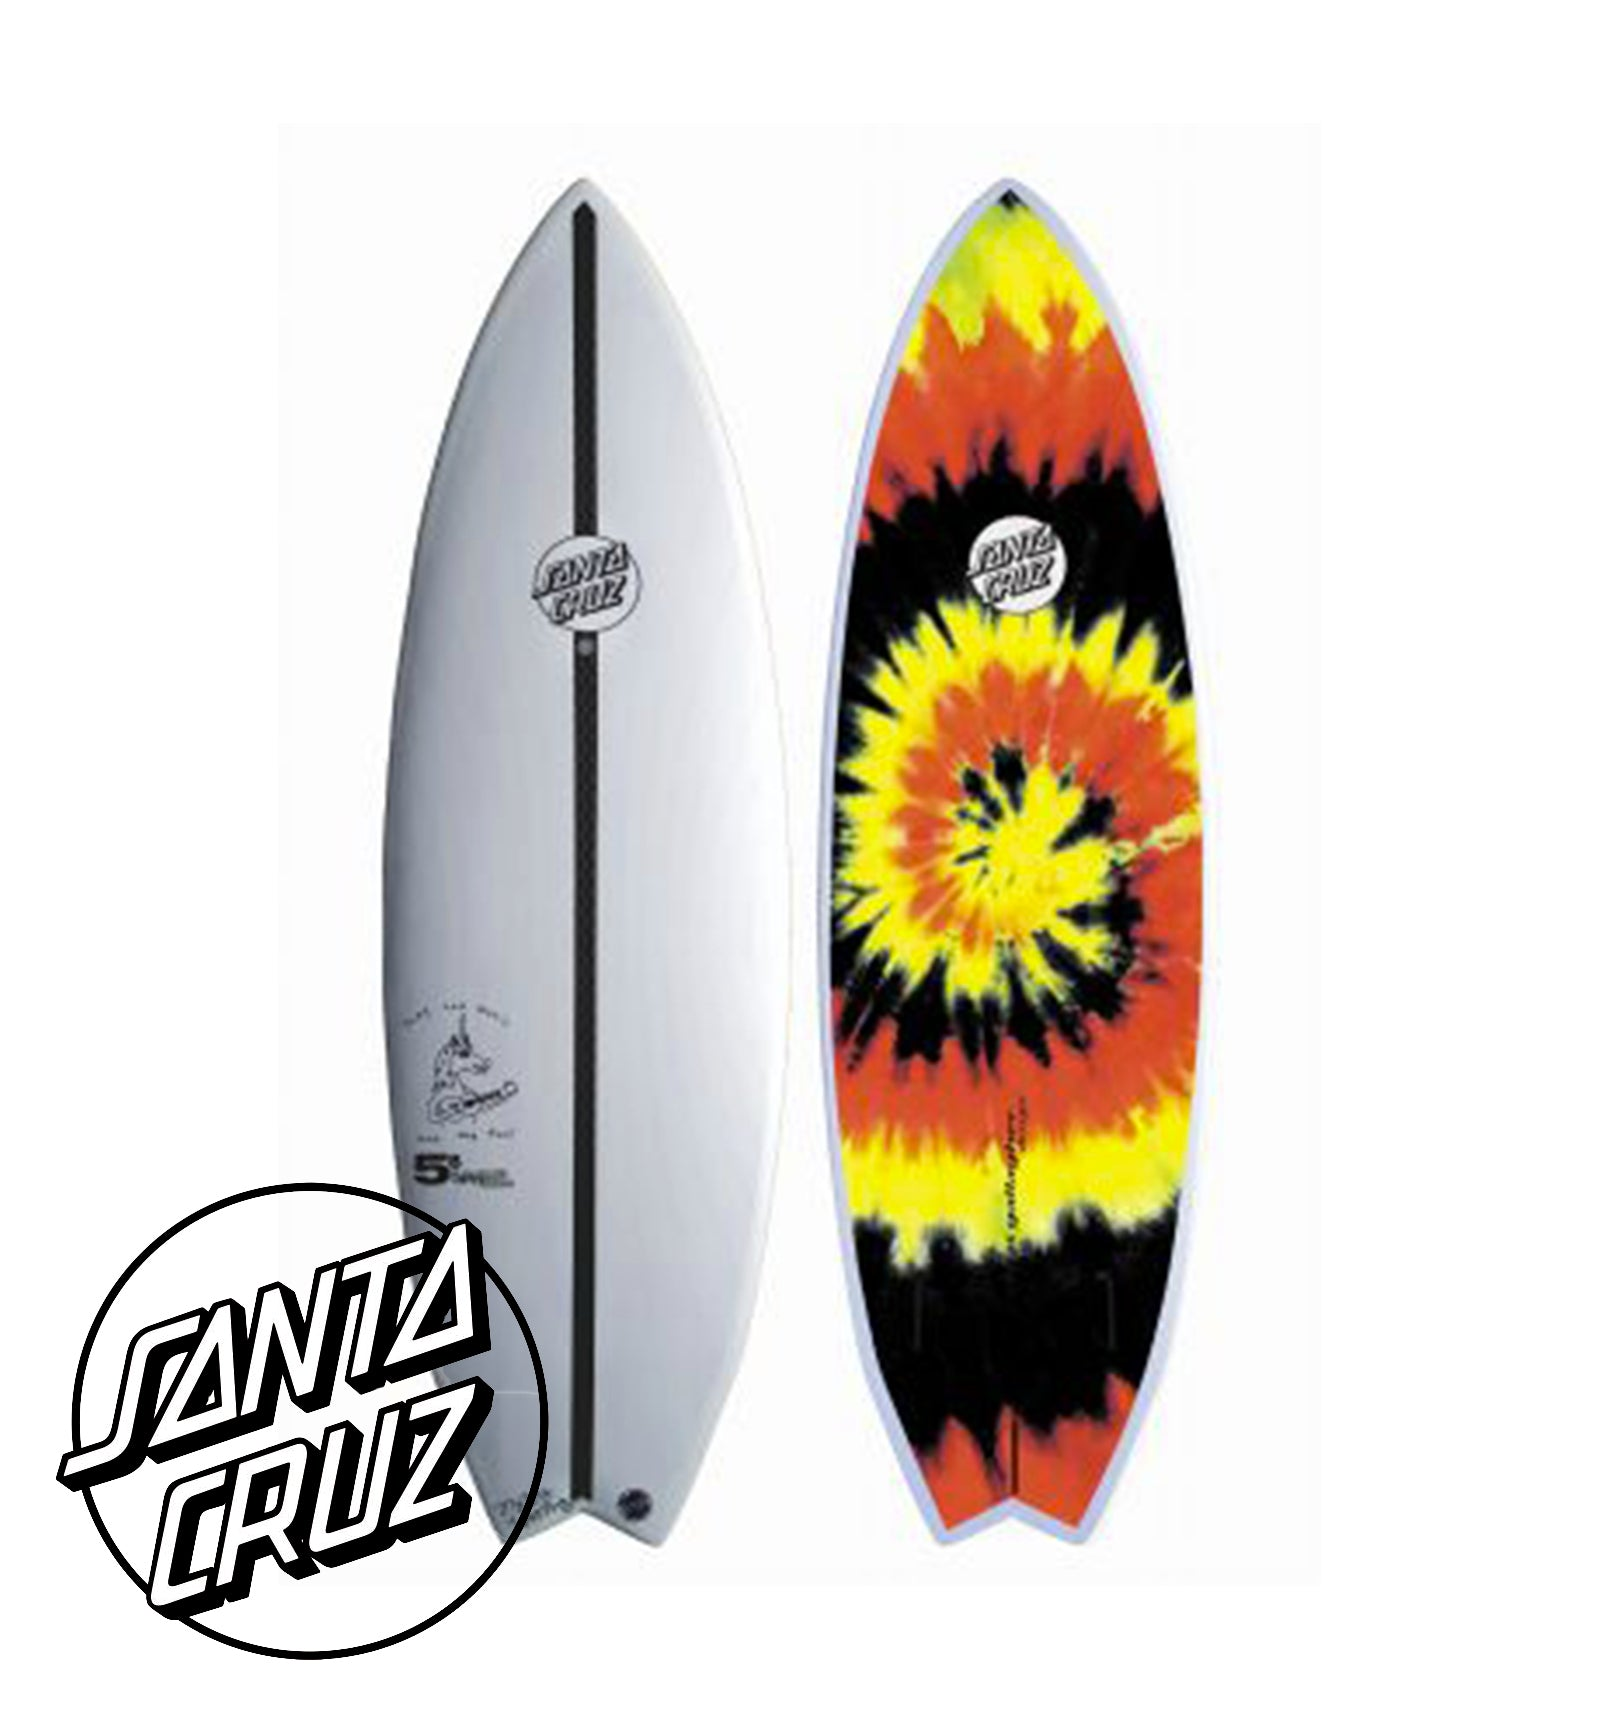 2017 Santa Cruz surfboards - Ozzie Wright Wing Swallow 5'8 - Tie Dye